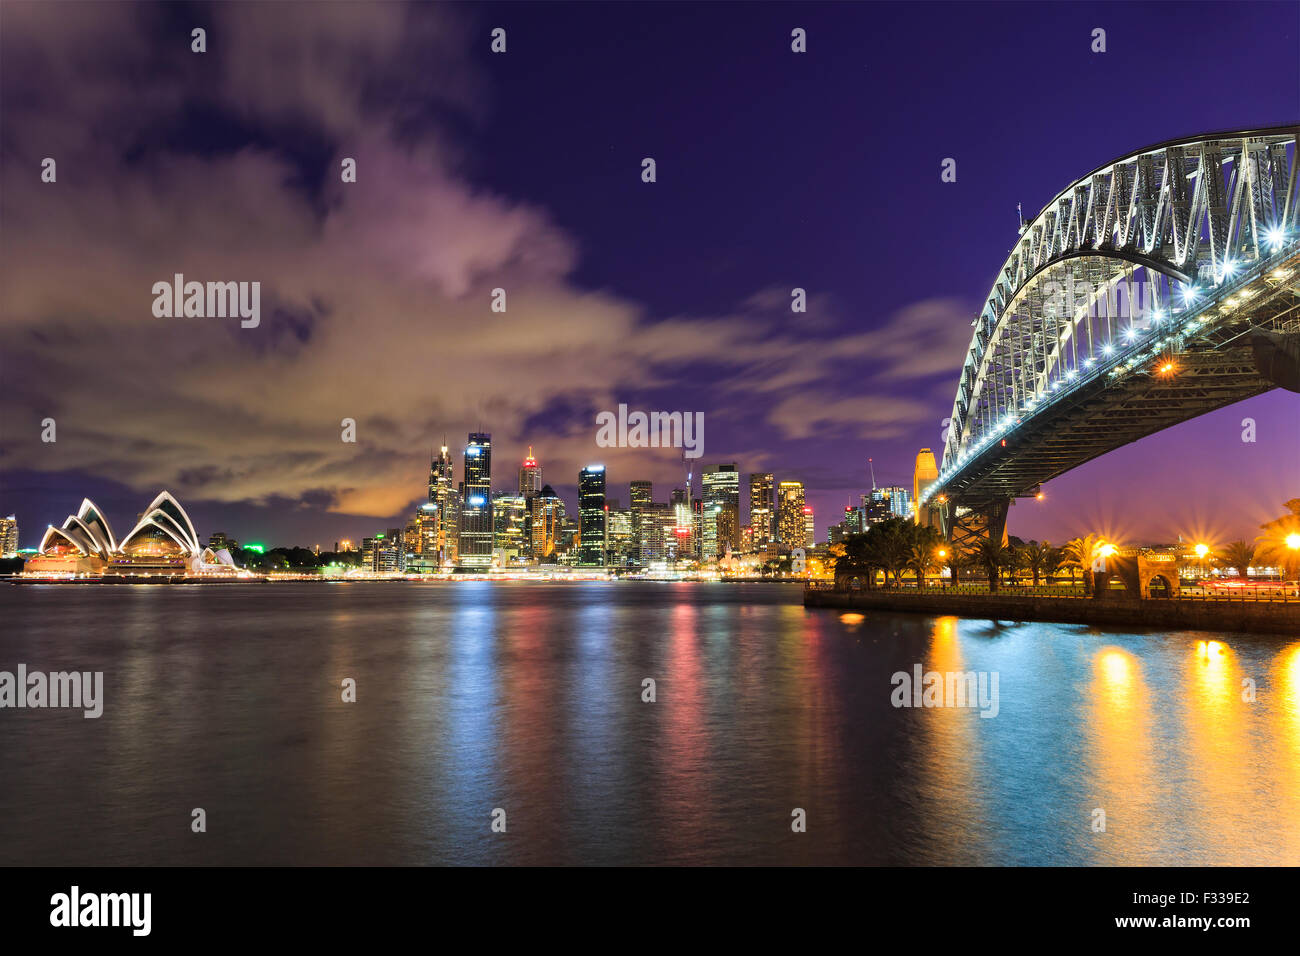 Sydney city CBD in Australia as twilight from across the Harbour with Bridge and skyscrapers landmarks - Stock Image